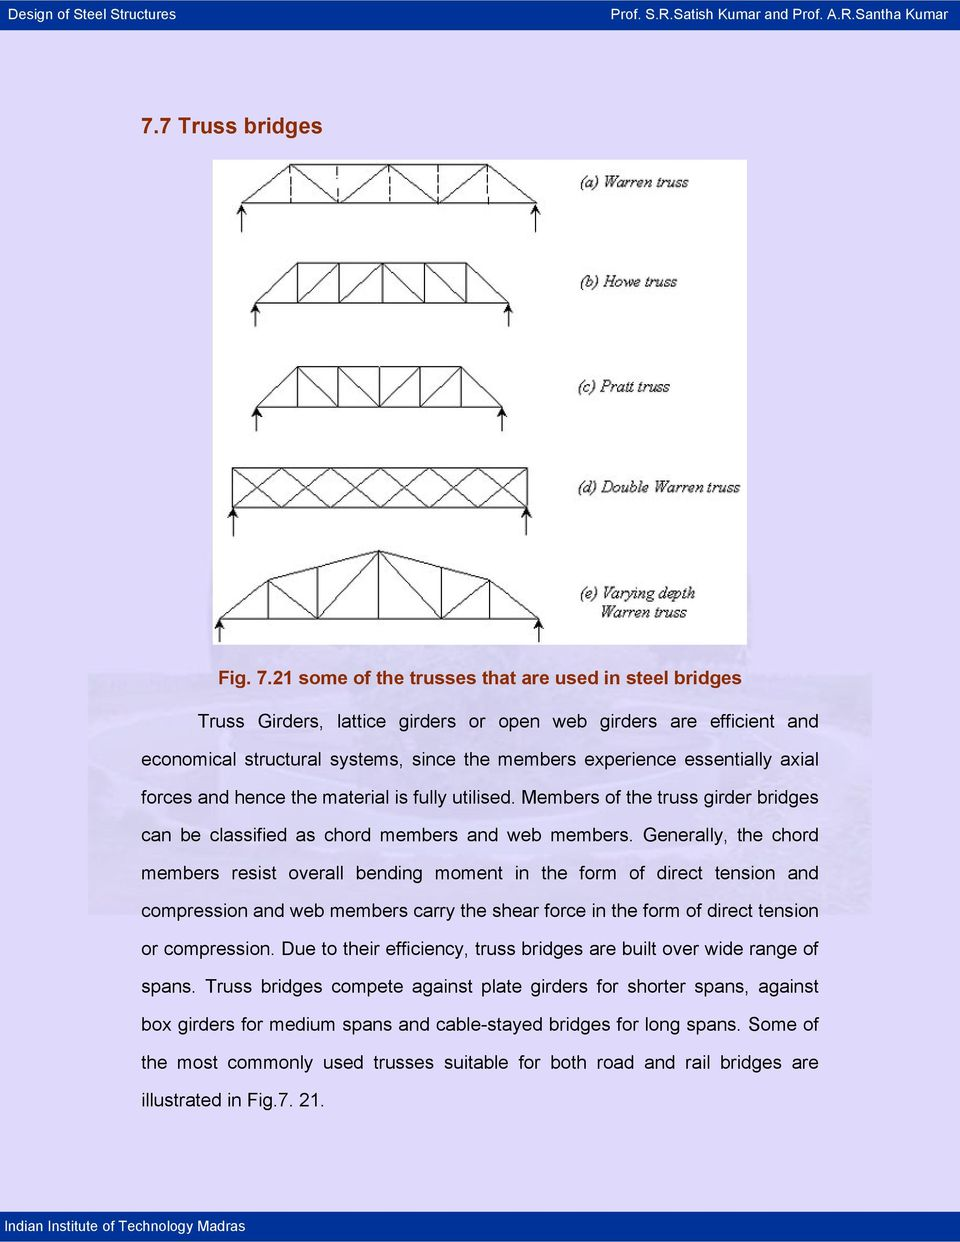 axial forces and hence the material is fully utilised. Members of the truss girder bridges can be classified as chord members and web members.